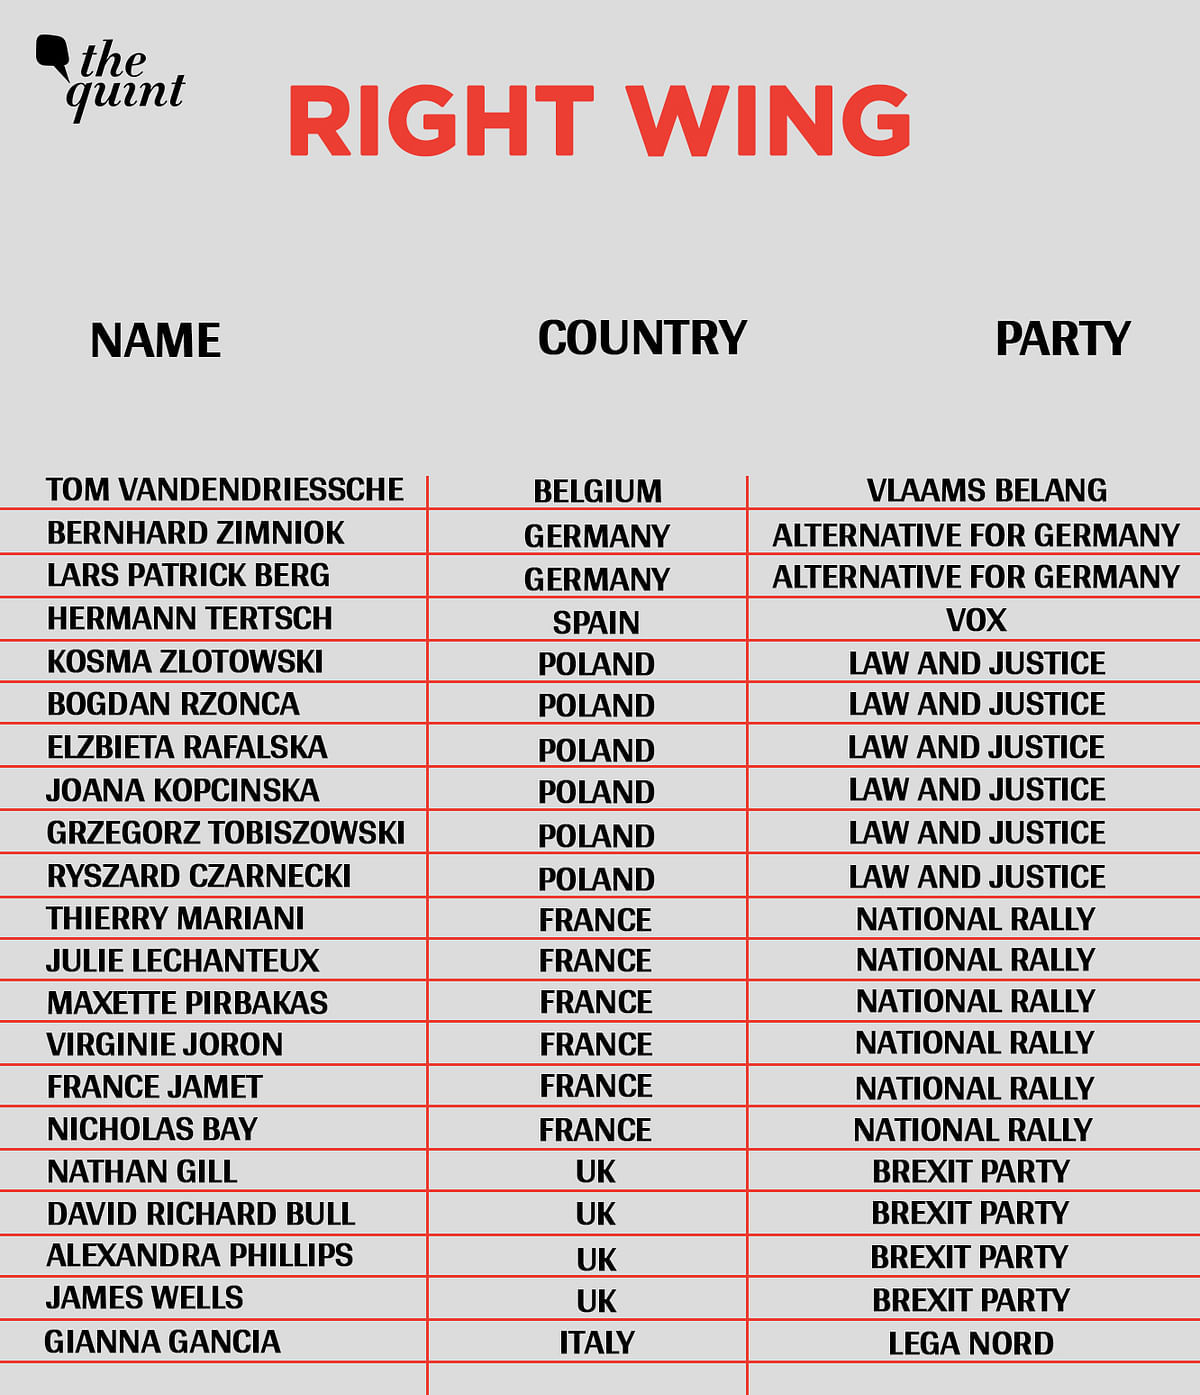 22 of the 27 EU MPs Invited to Kashmir Are From Right-Wing Parties